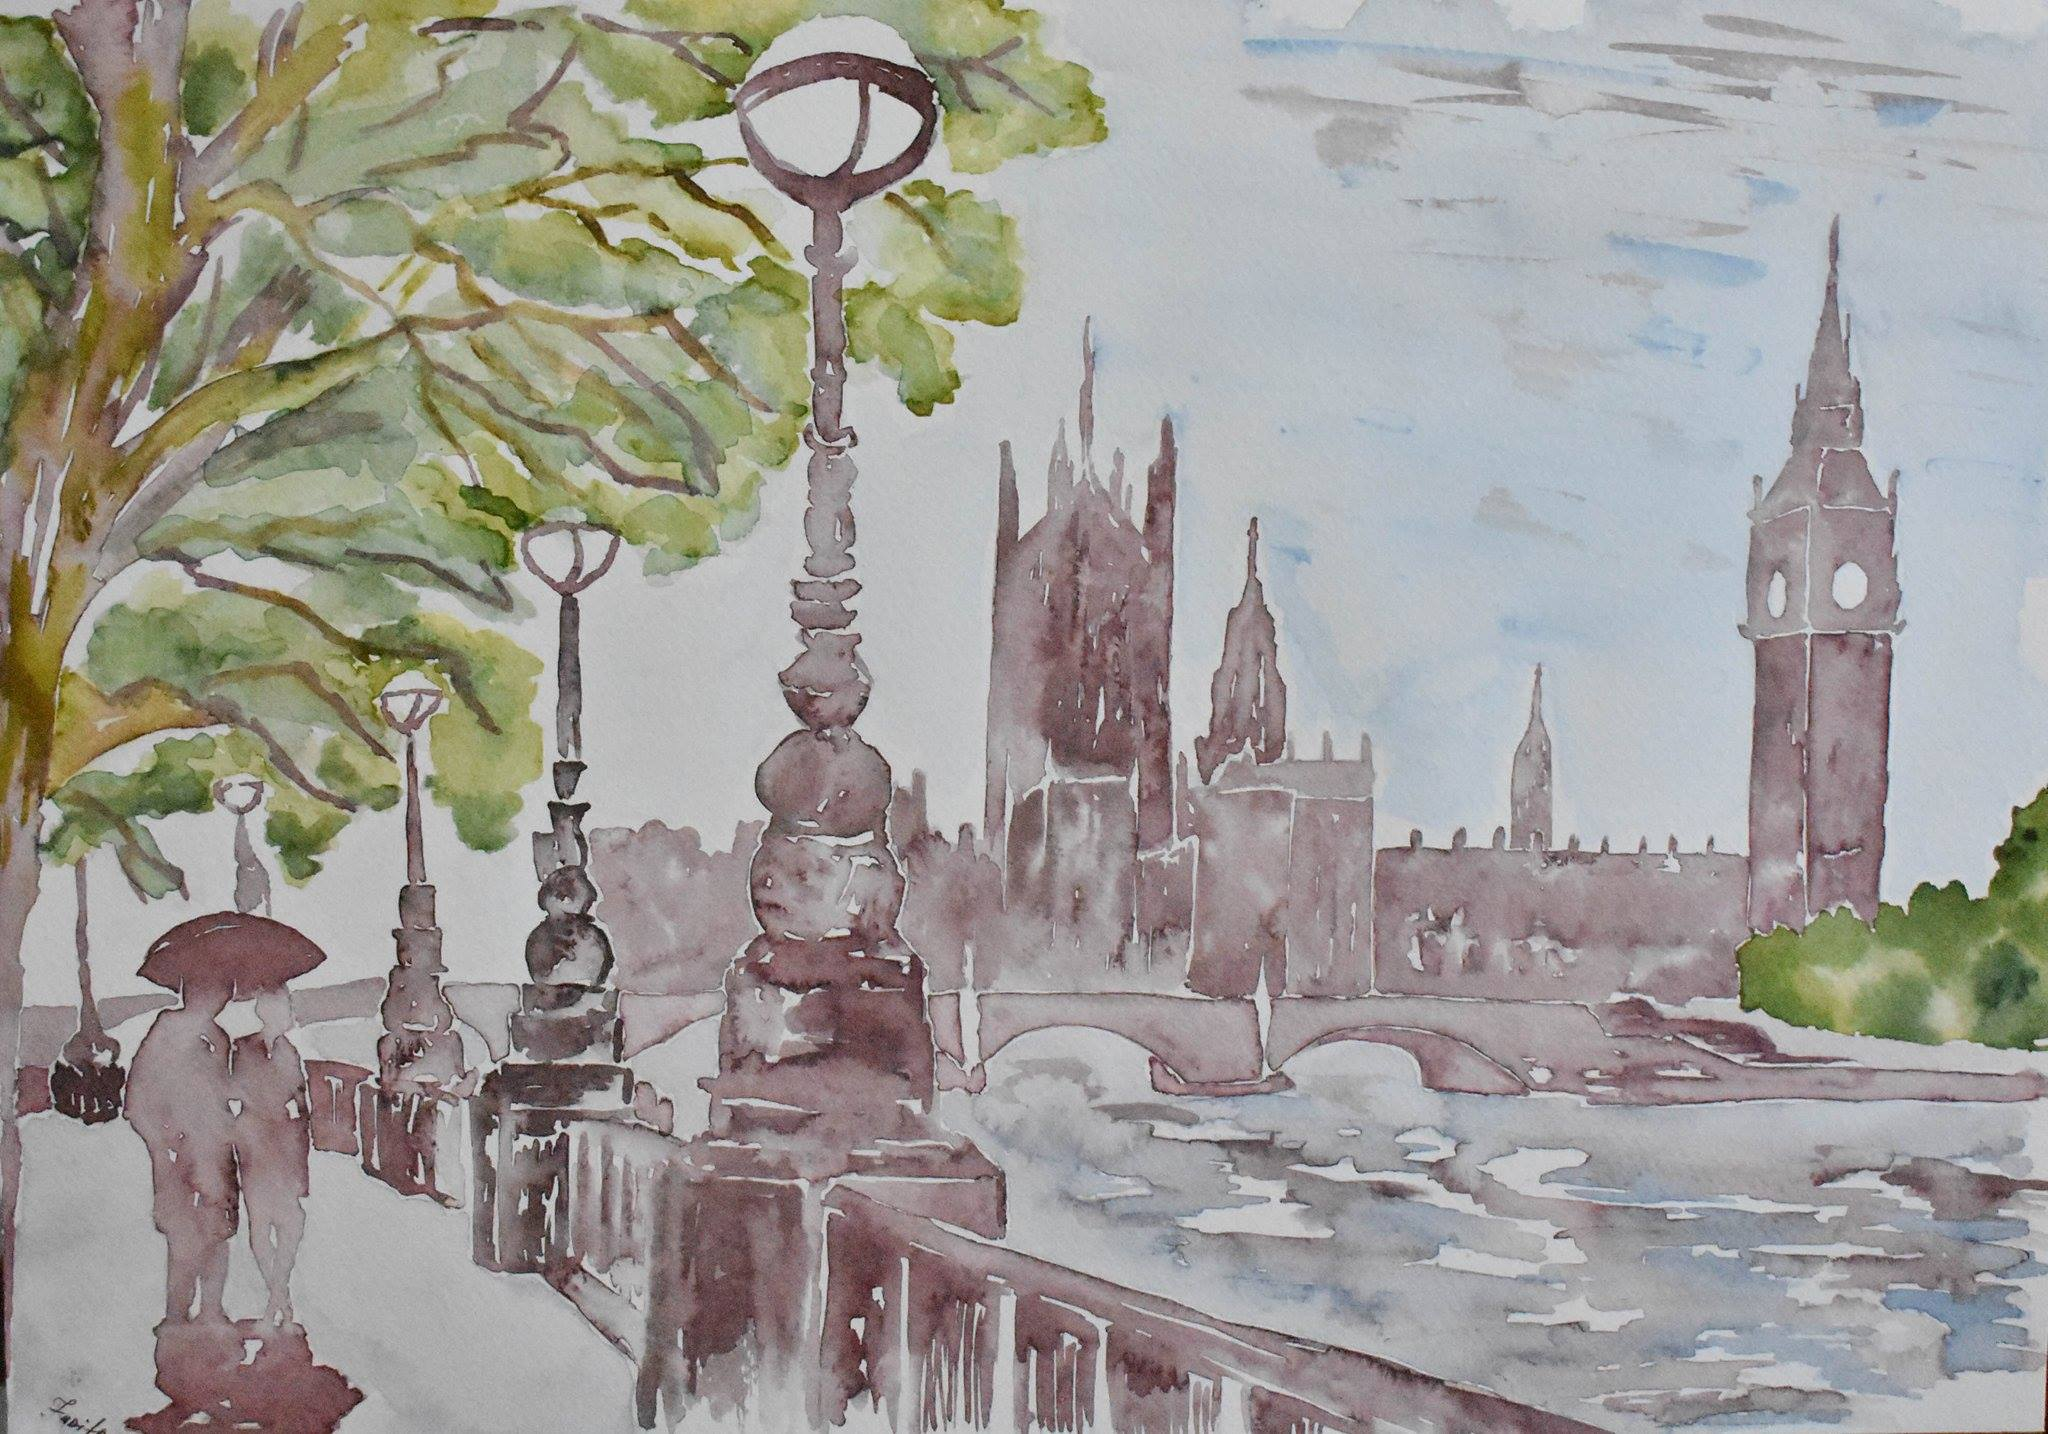 View of the Thames and Parliament UK in London, Jurita, 2017, watercolor, 42 x 29 cm